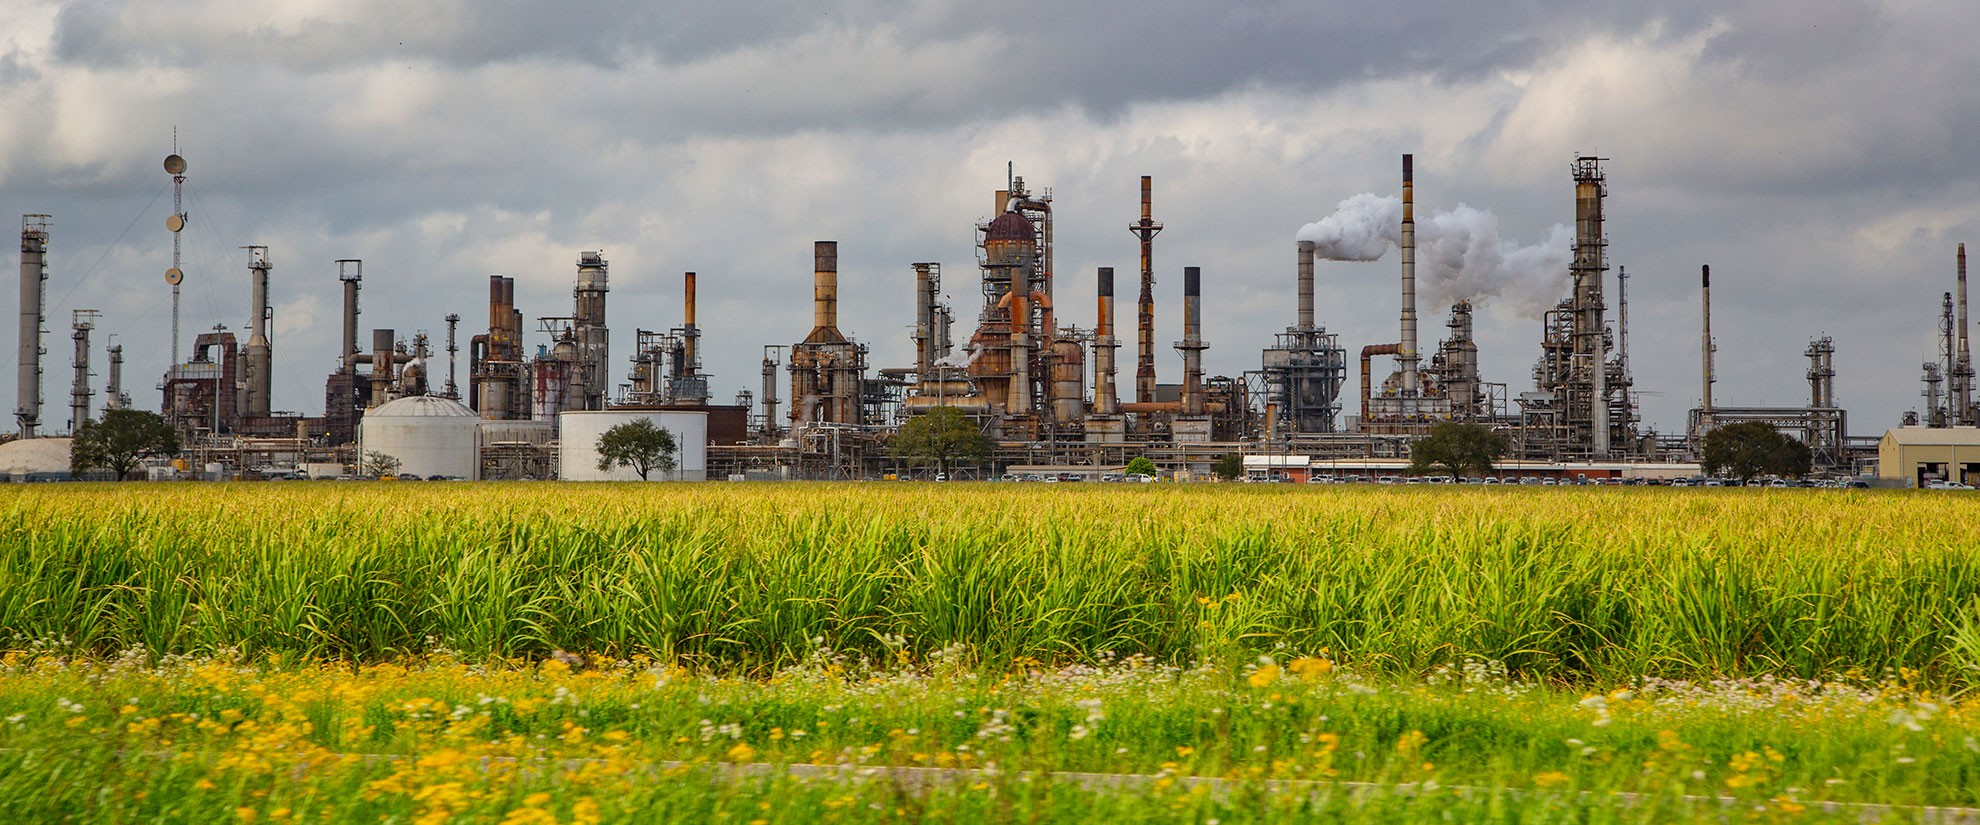 A petrochemicals plant in Louisiana.